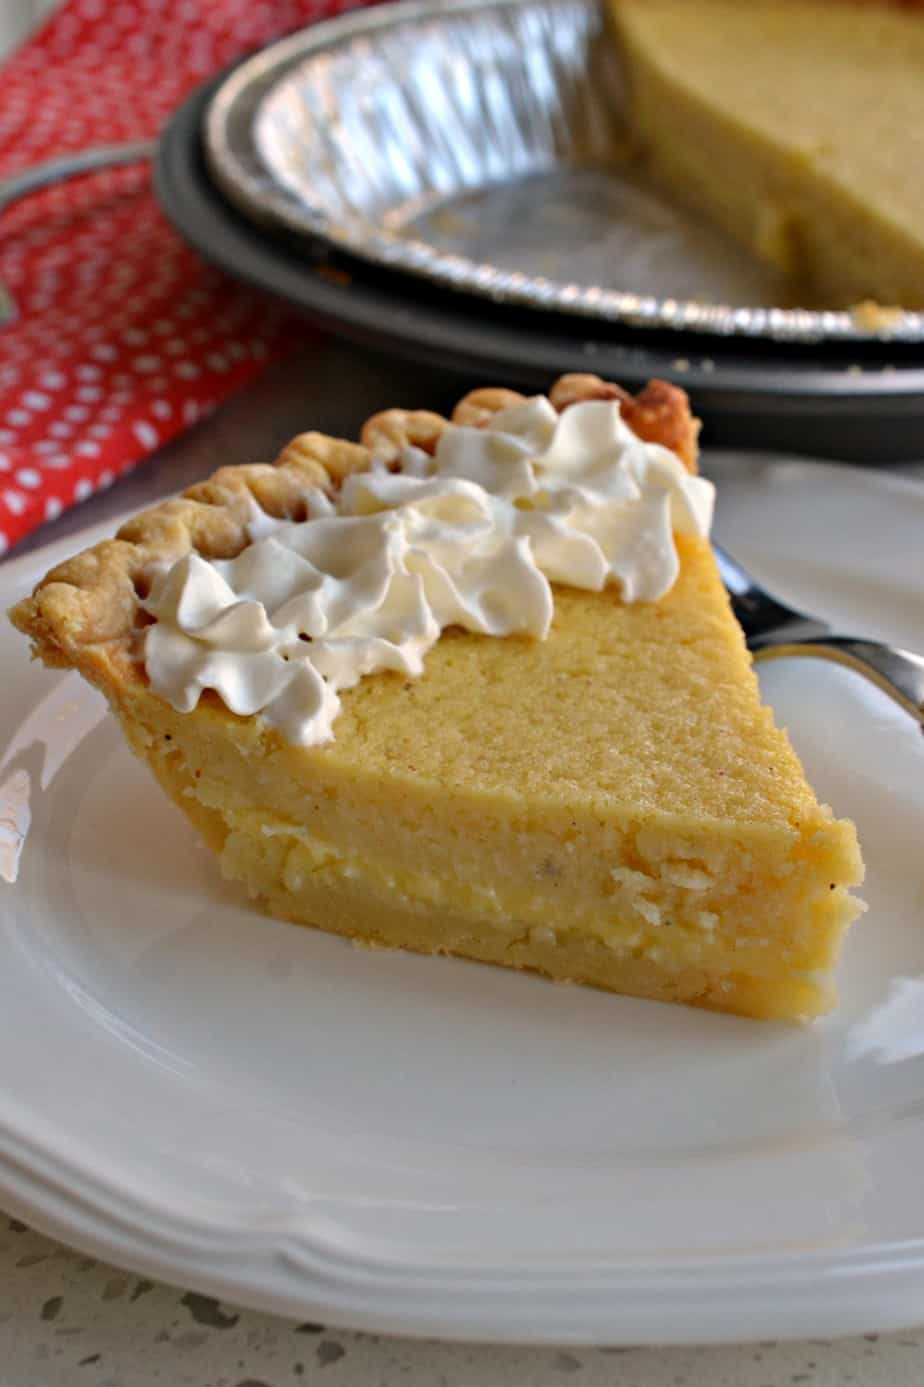 Buttermilk Pie is a creamy, sweet pie that's perfect for holidays, parties, or birthdays